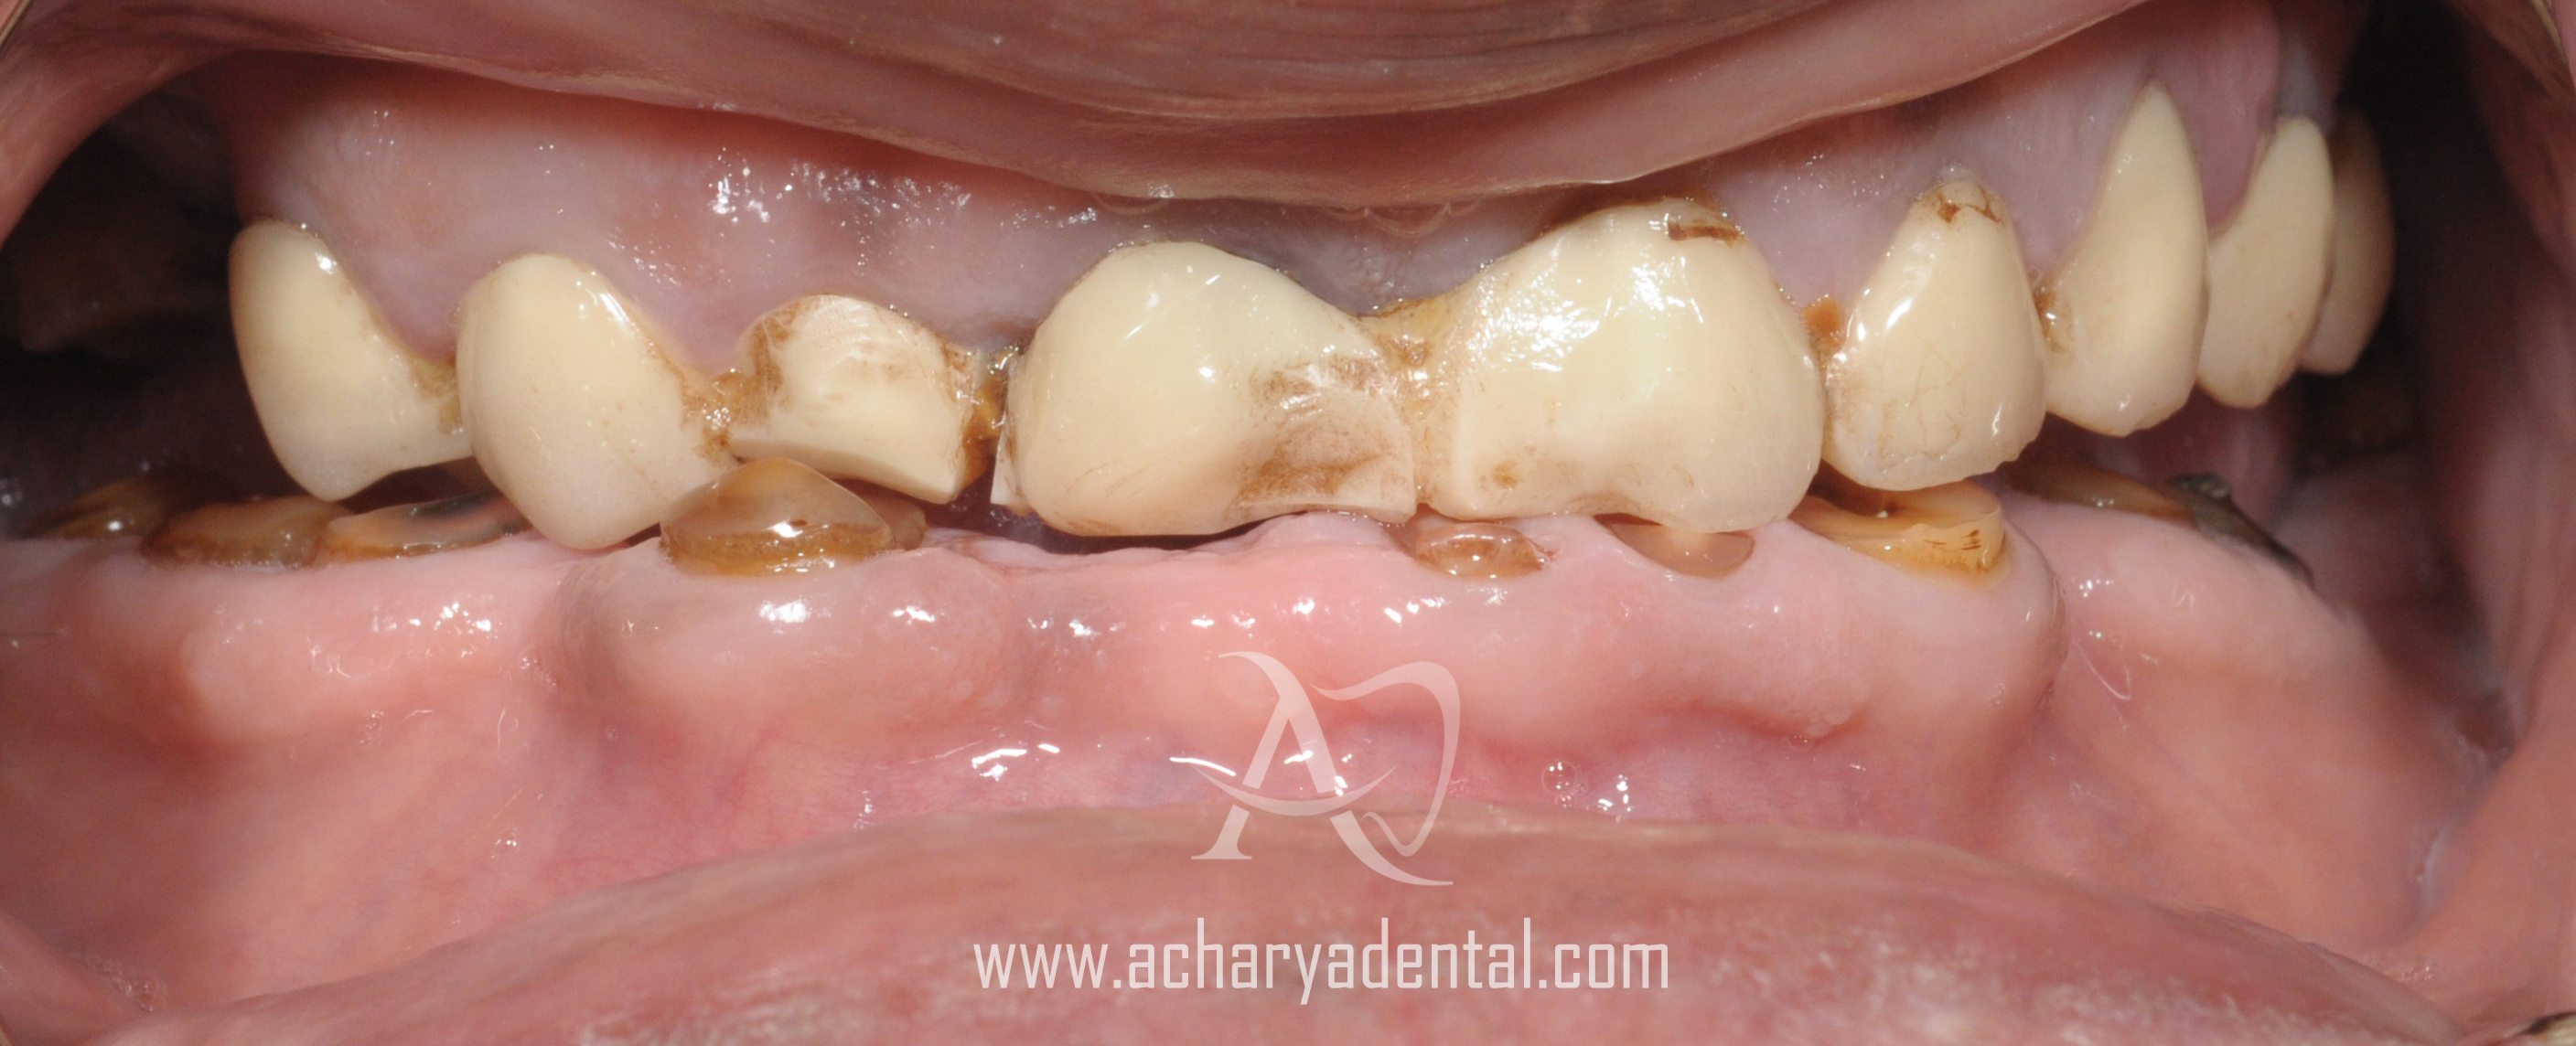 before dental implant diagnosis